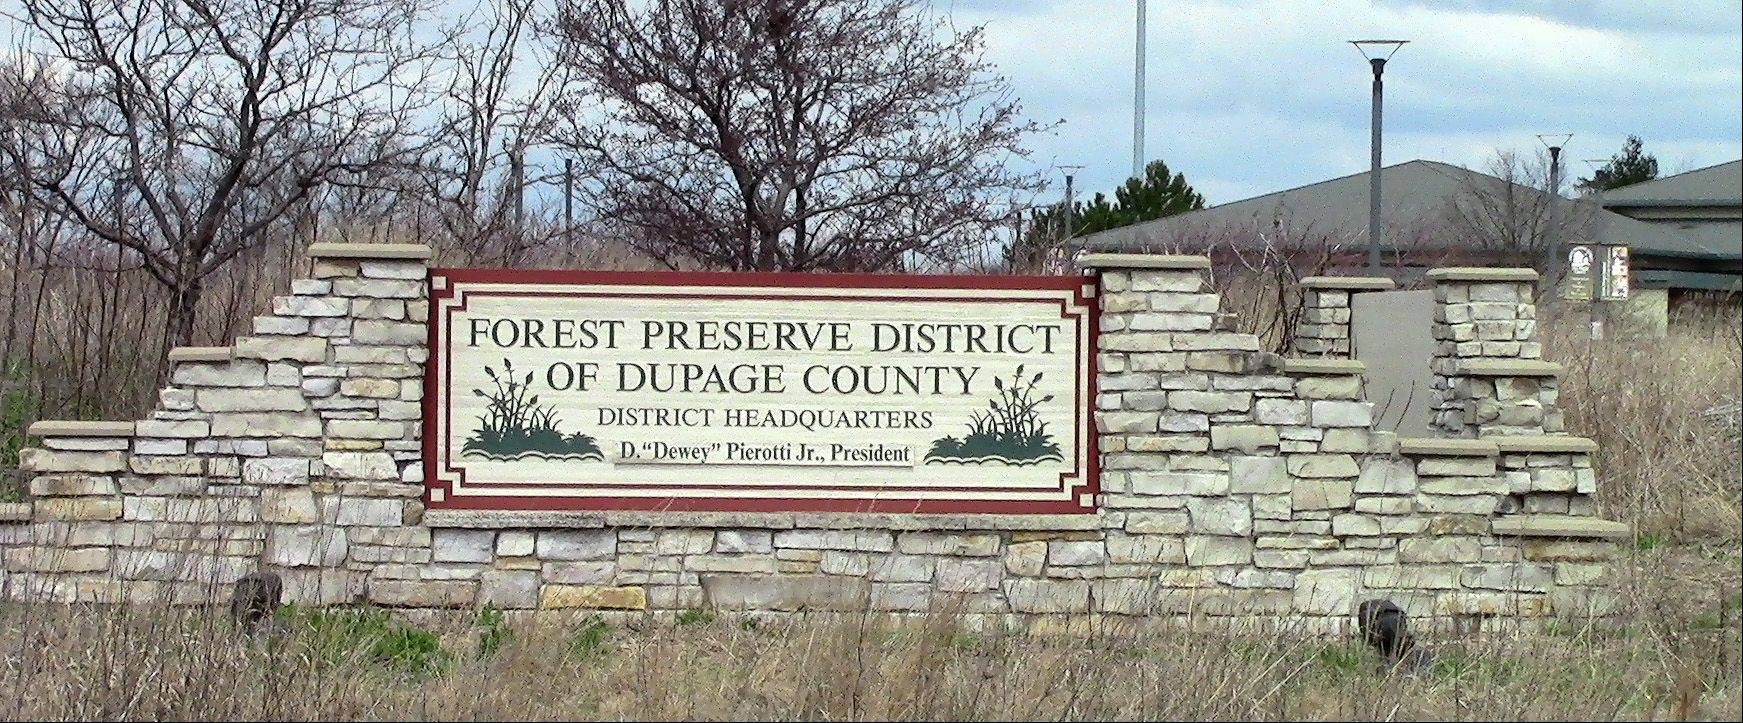 DuPage County Forest Preserve President D. Dewey Pierotti�s name appears on 68 signs at key sites around the county, including the district�s headquarters along Naperville Road in Wheaton.